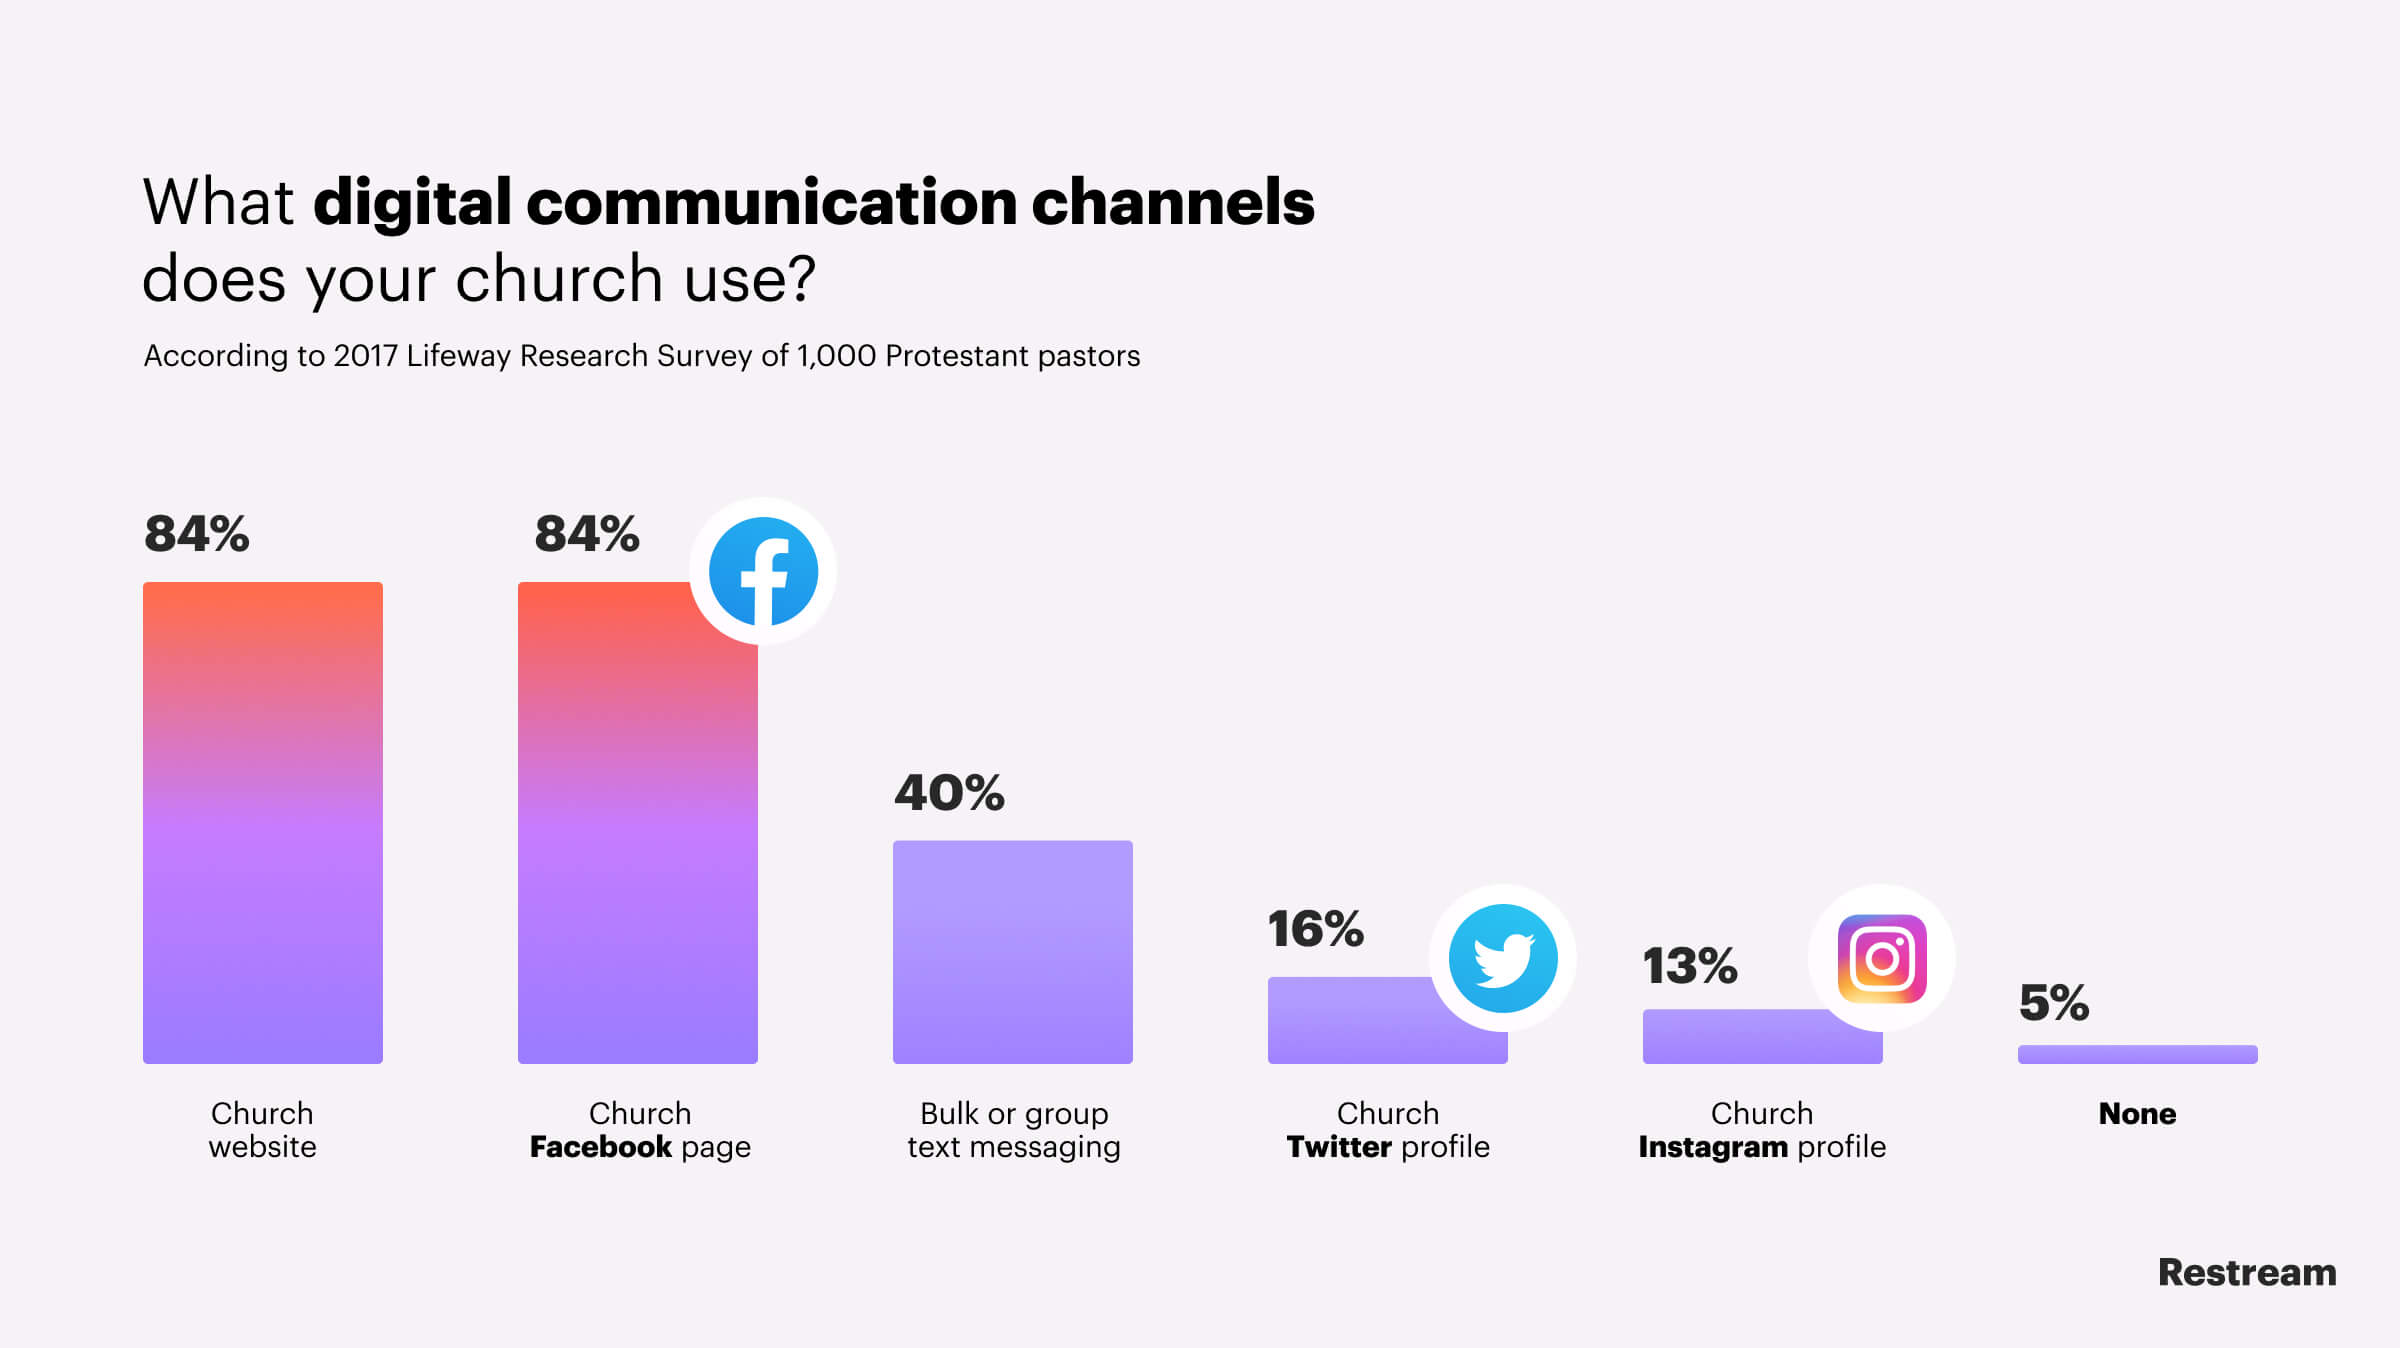 What digital communication channels does your church use?